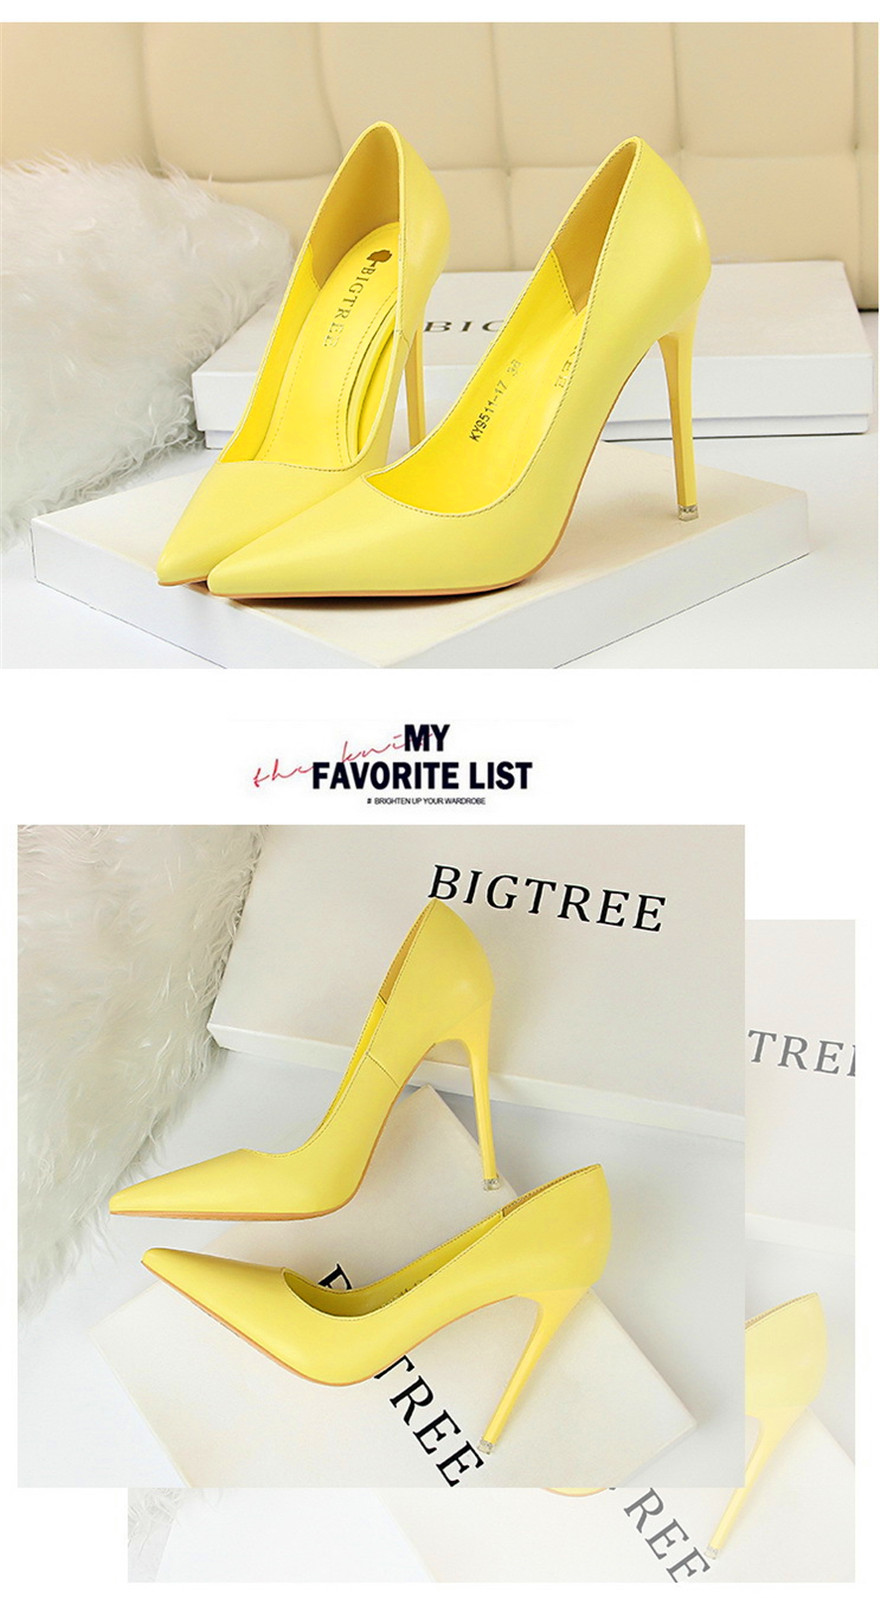 BIGTREE Soft Leather Shallow Fashion Women's High Heels Shoes Candy Colors Pointed Toe Women Pumps Show Thin Female Office Shoe 7